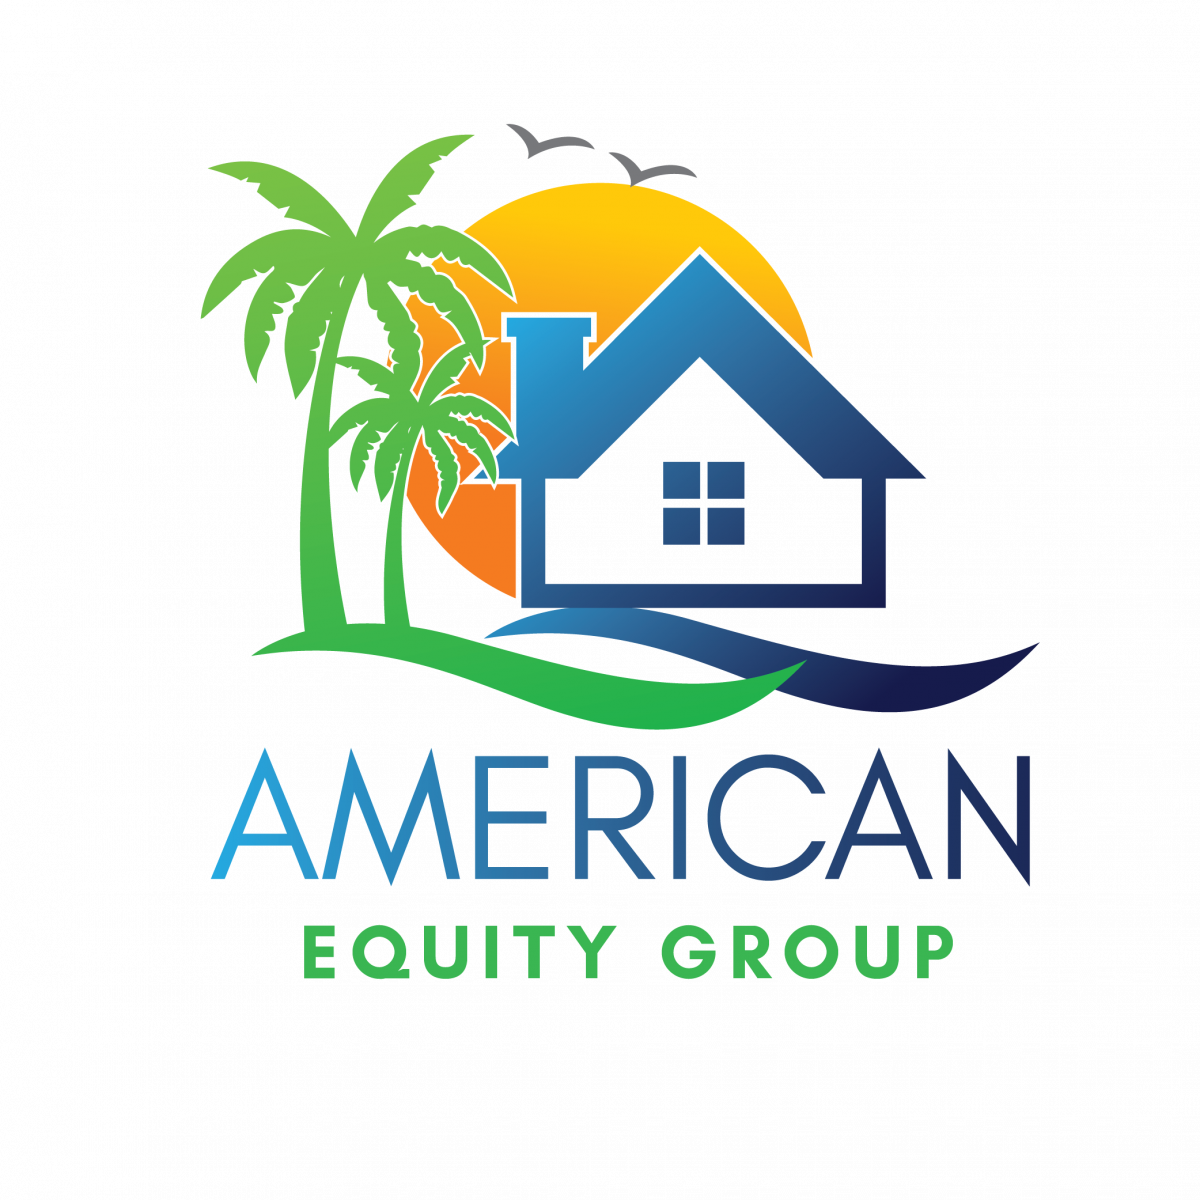 American Equity Group logo